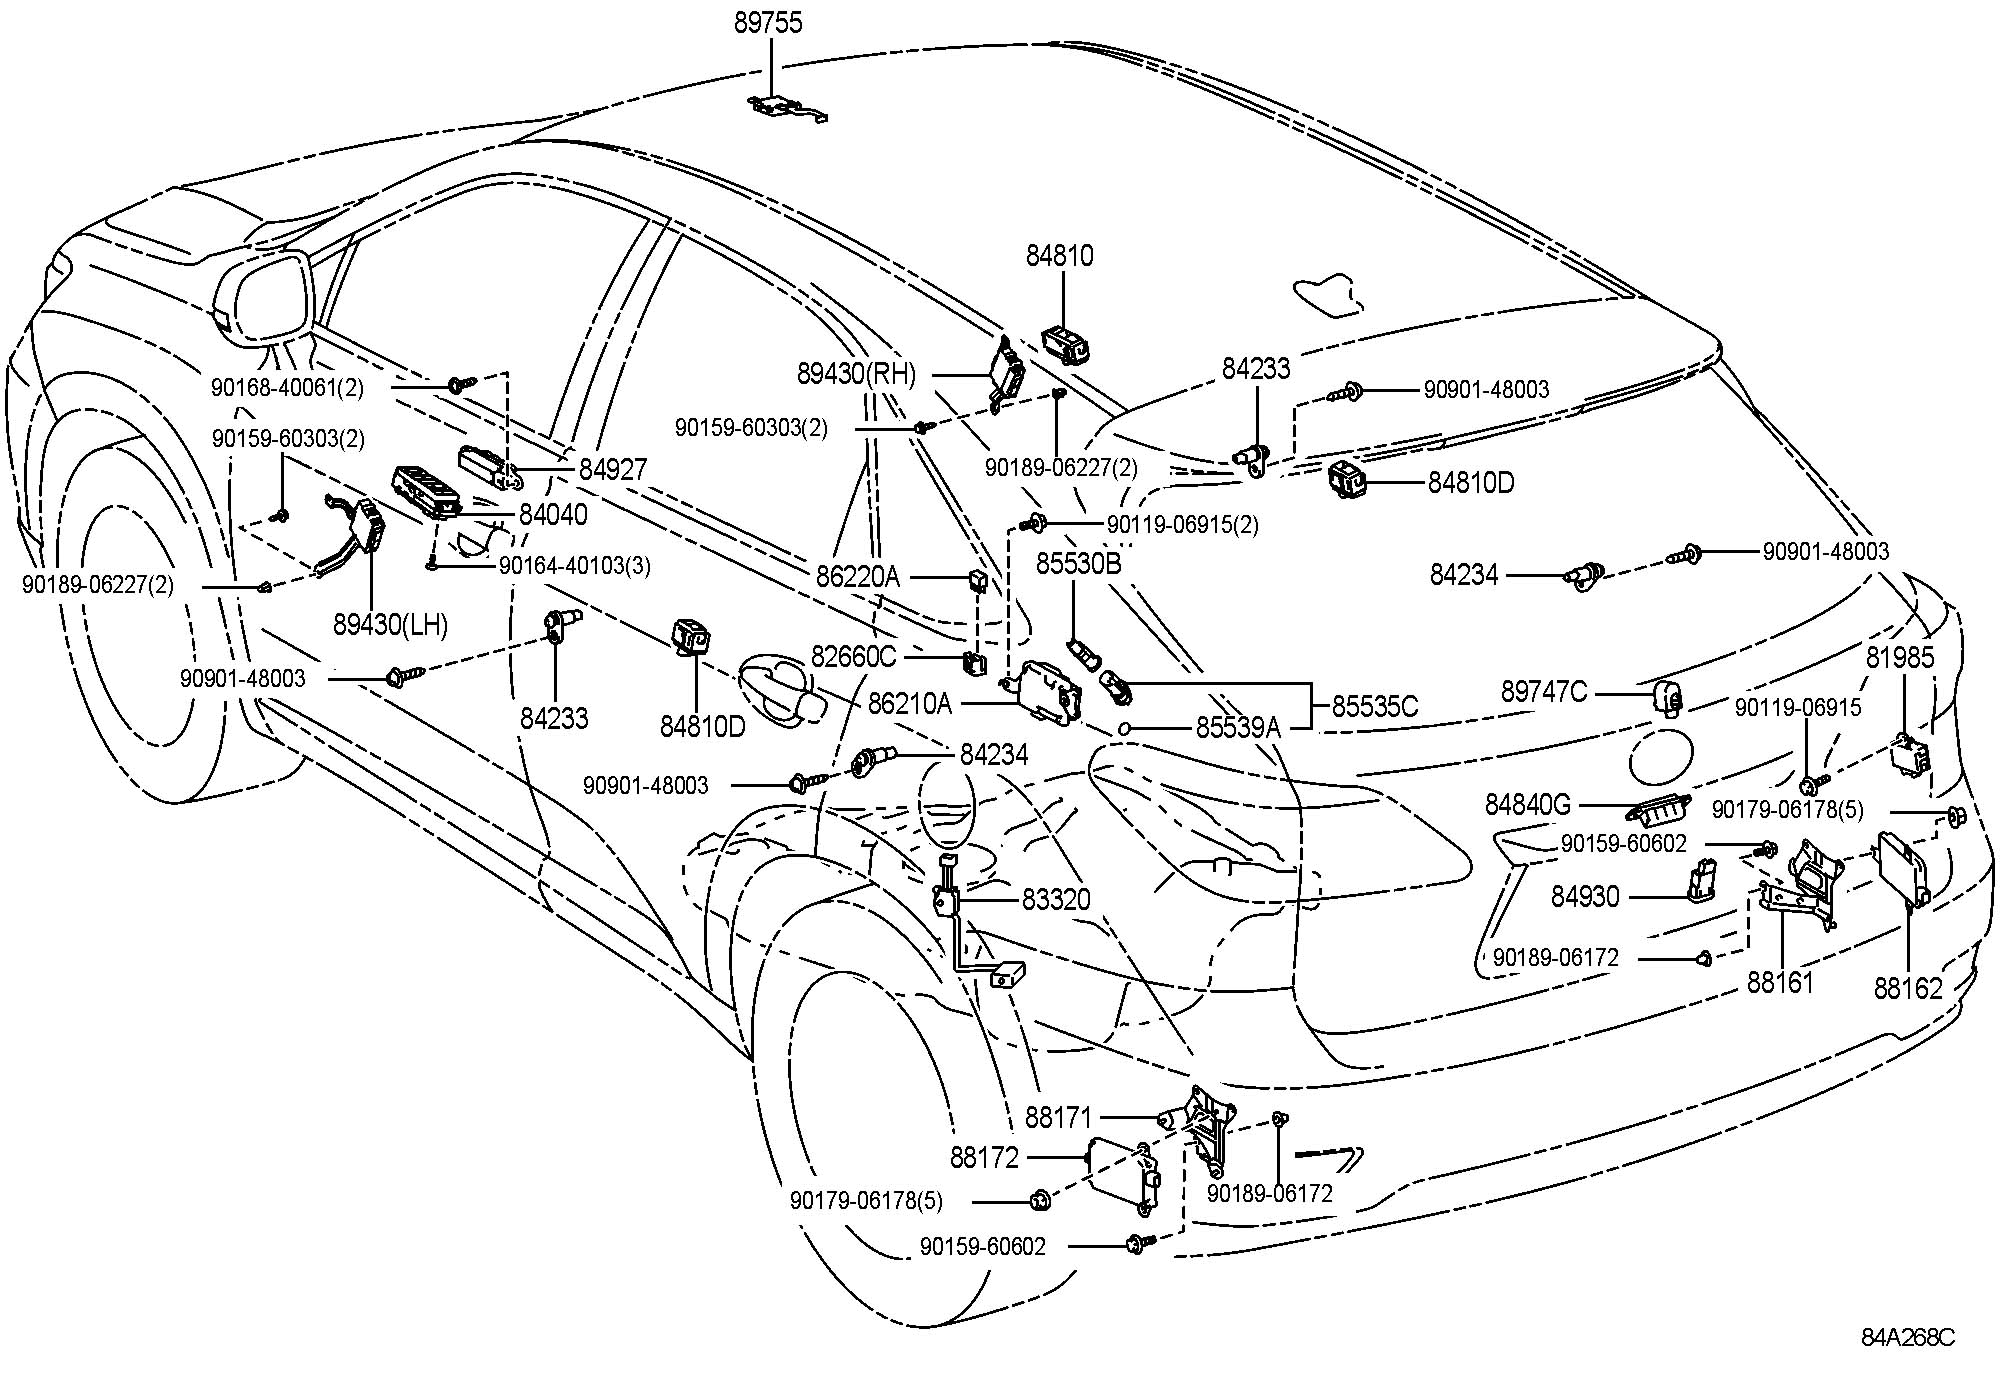 Traxxas Rustler Parts Diagram also Nissan Versa Door Diagram also 2004 Lexus Rx330 Parts Diagram moreover Dodge 1500 Engine Harness also Pioneer 6 Disc Cd Changer Wiring Diagram Free Image. on chevy wiring diagrams site